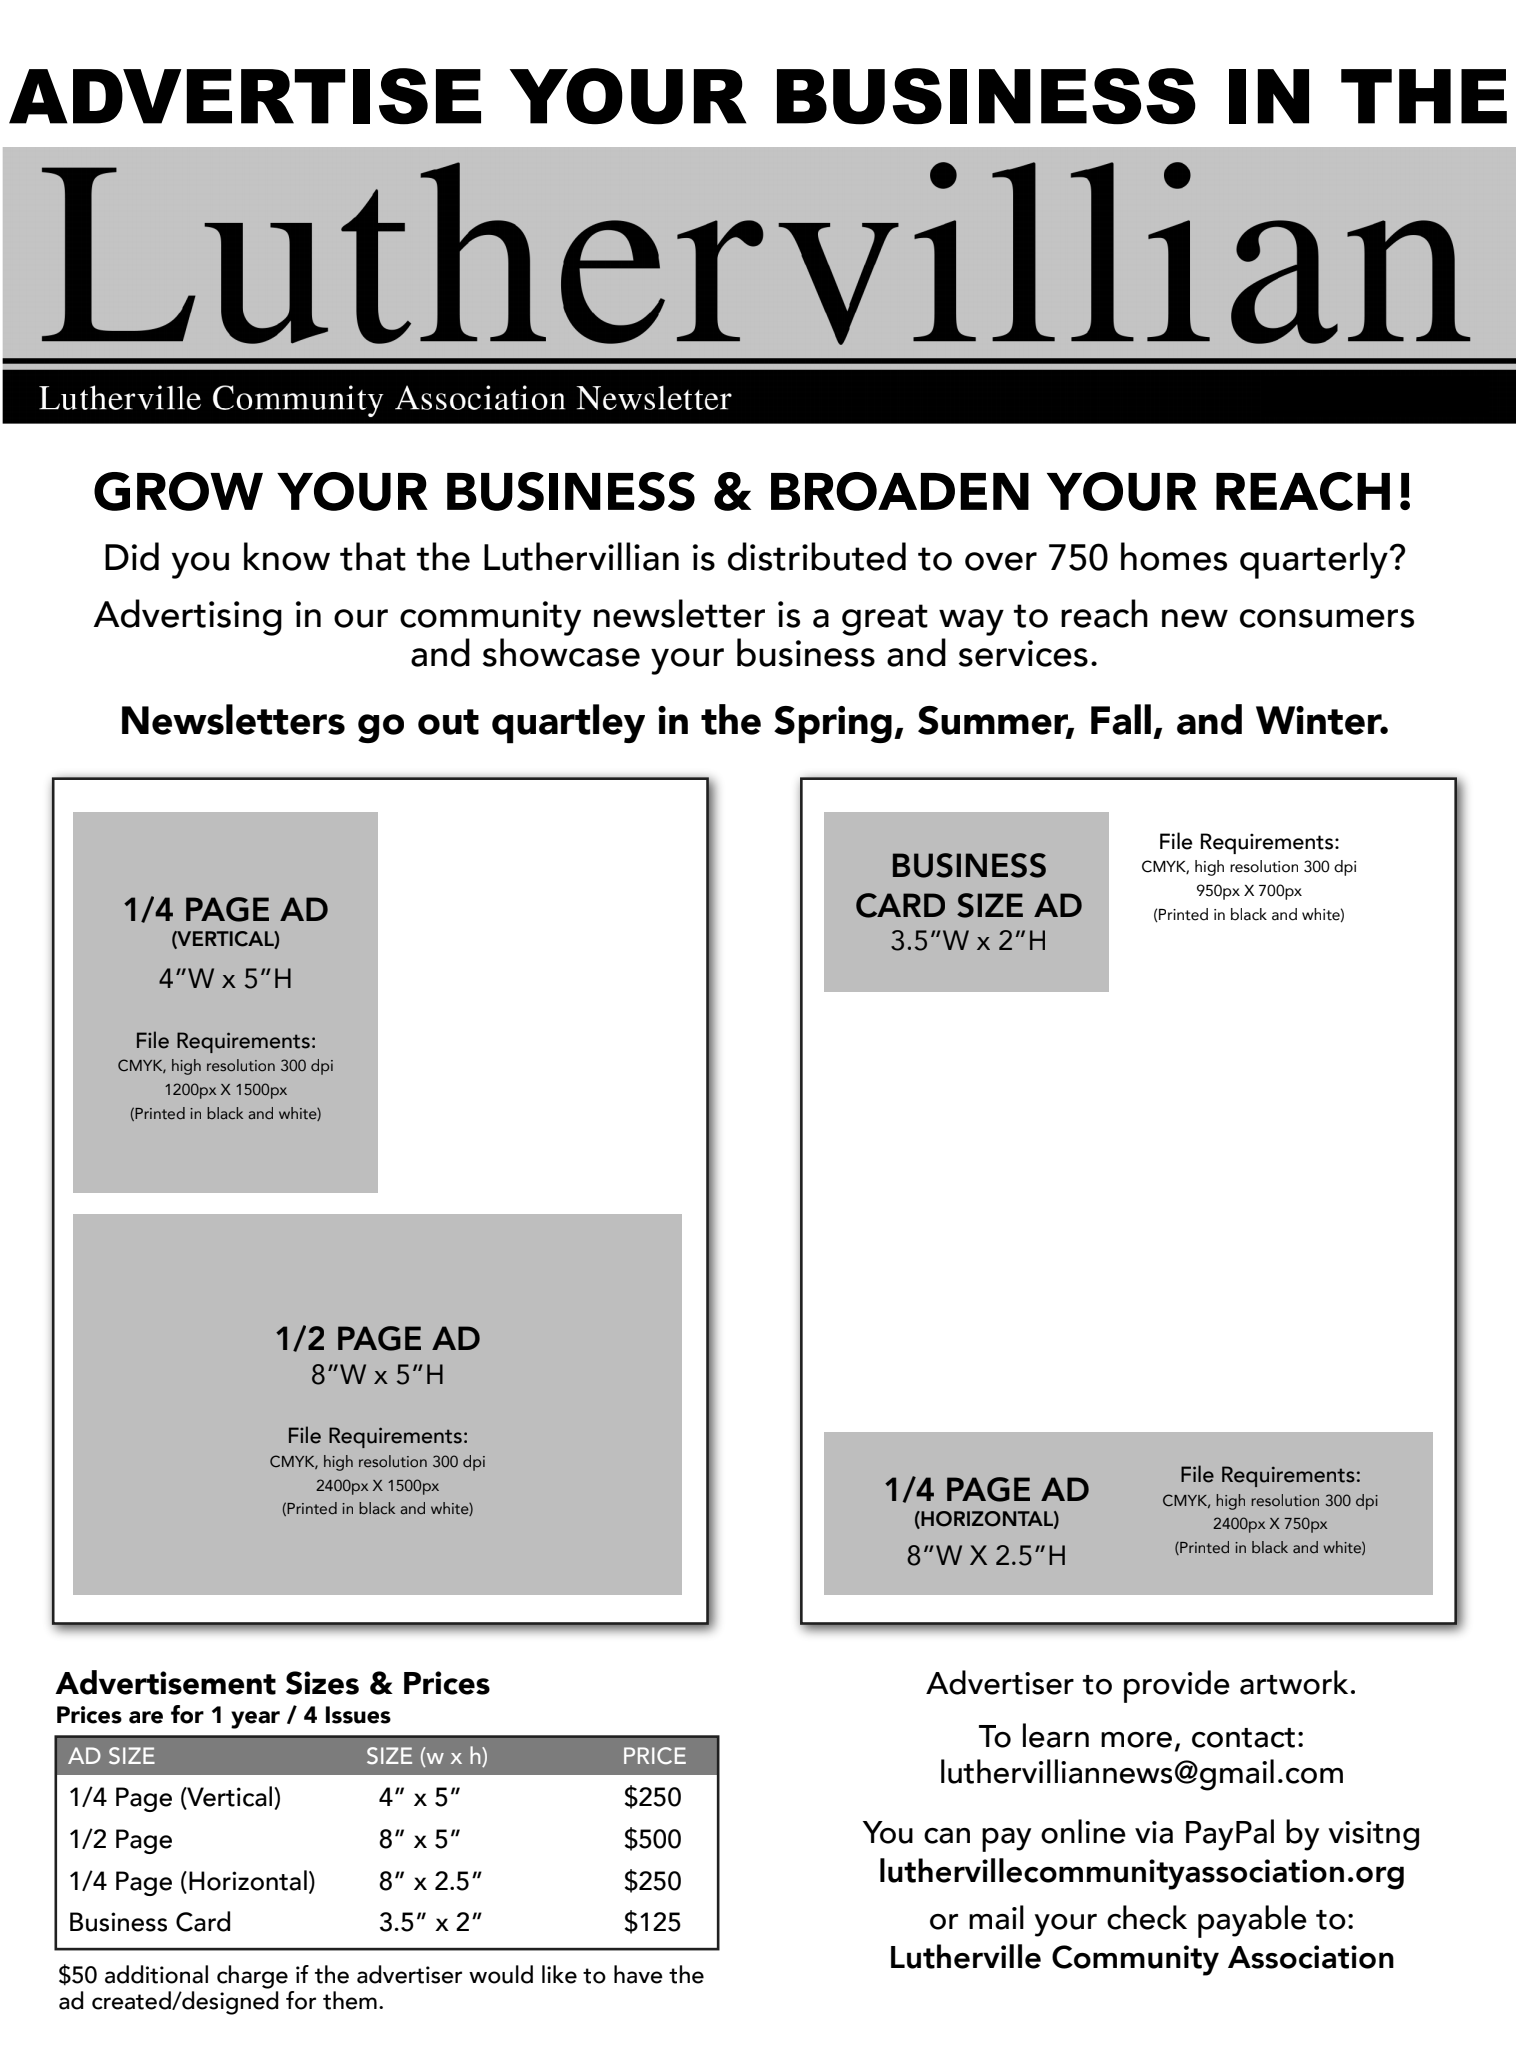 Advertise-in-the-Newsletter